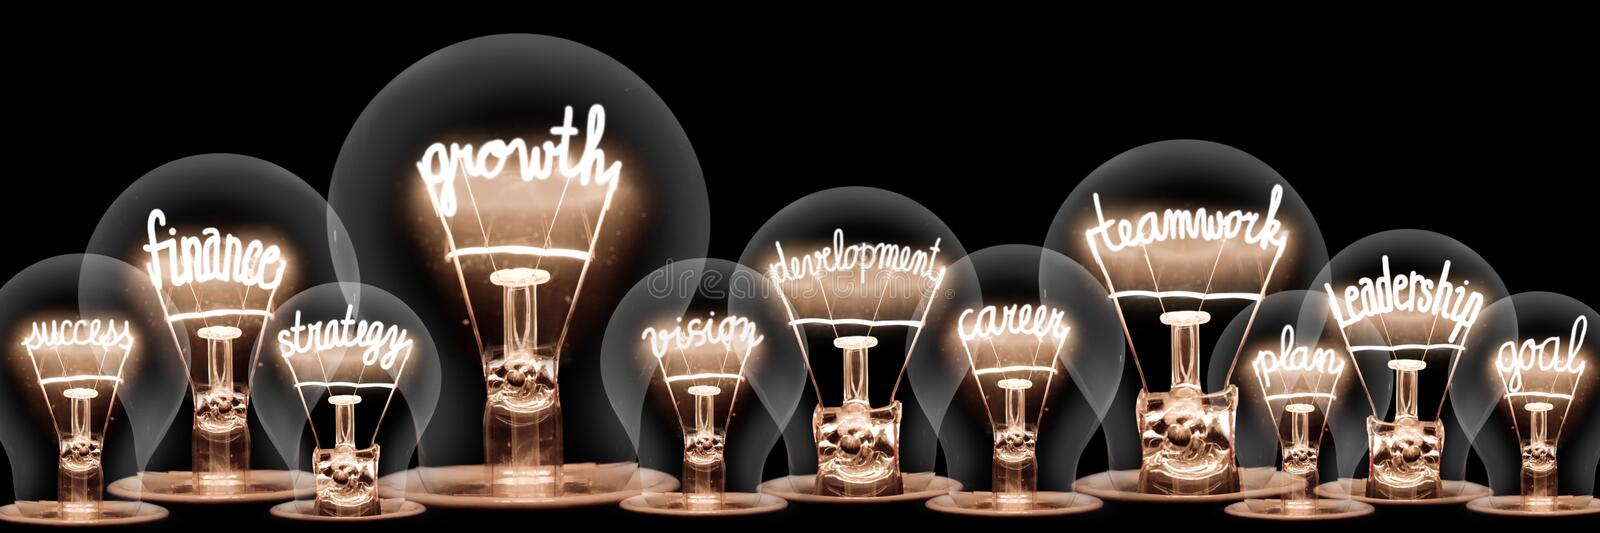 Light Bulbs with Growth Concept royalty free stock photo